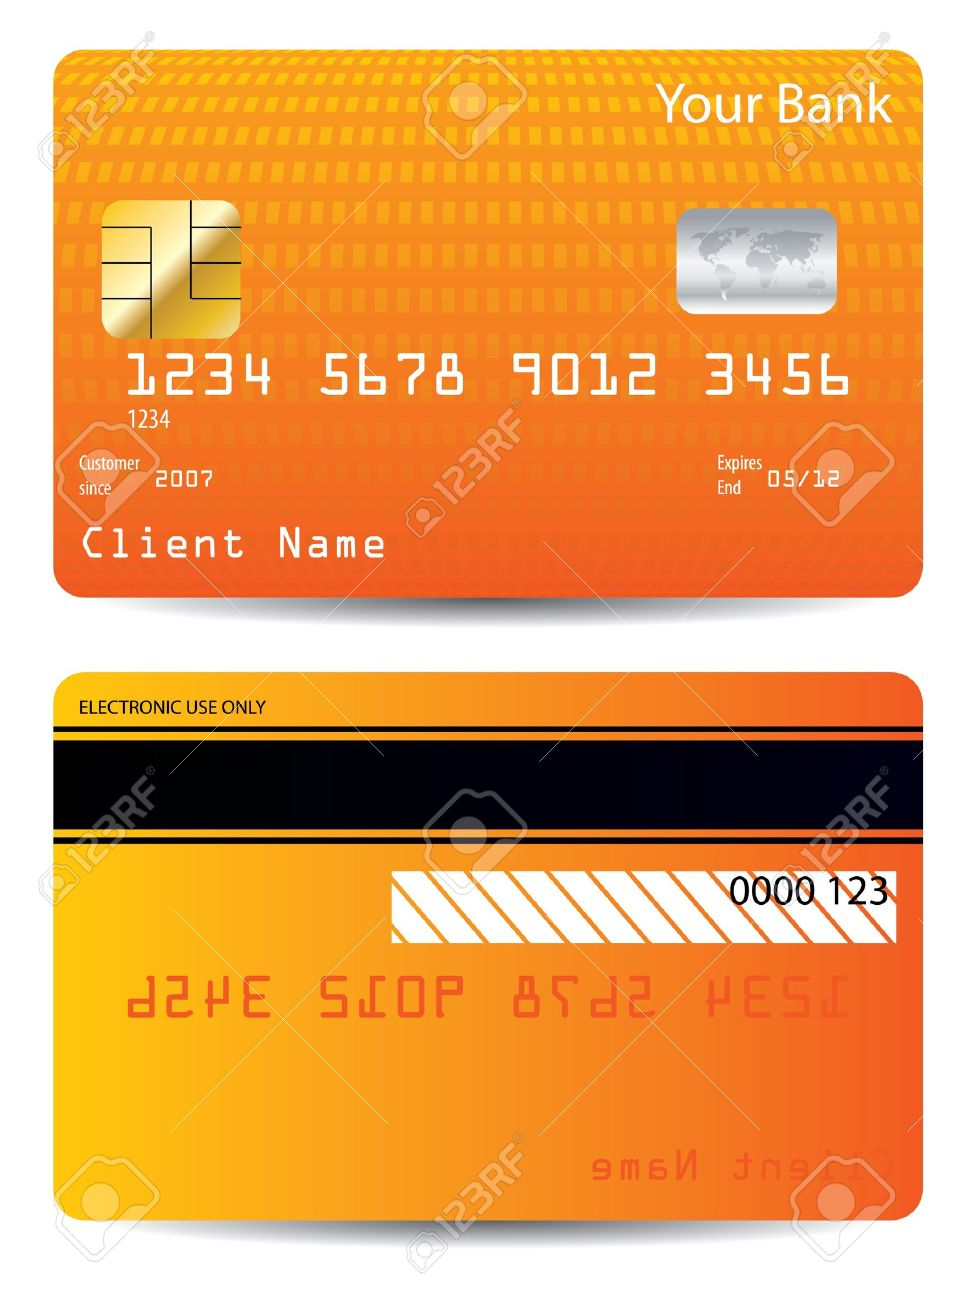 Textured Credit Card Design With Orange Halftone Royalty Free ...